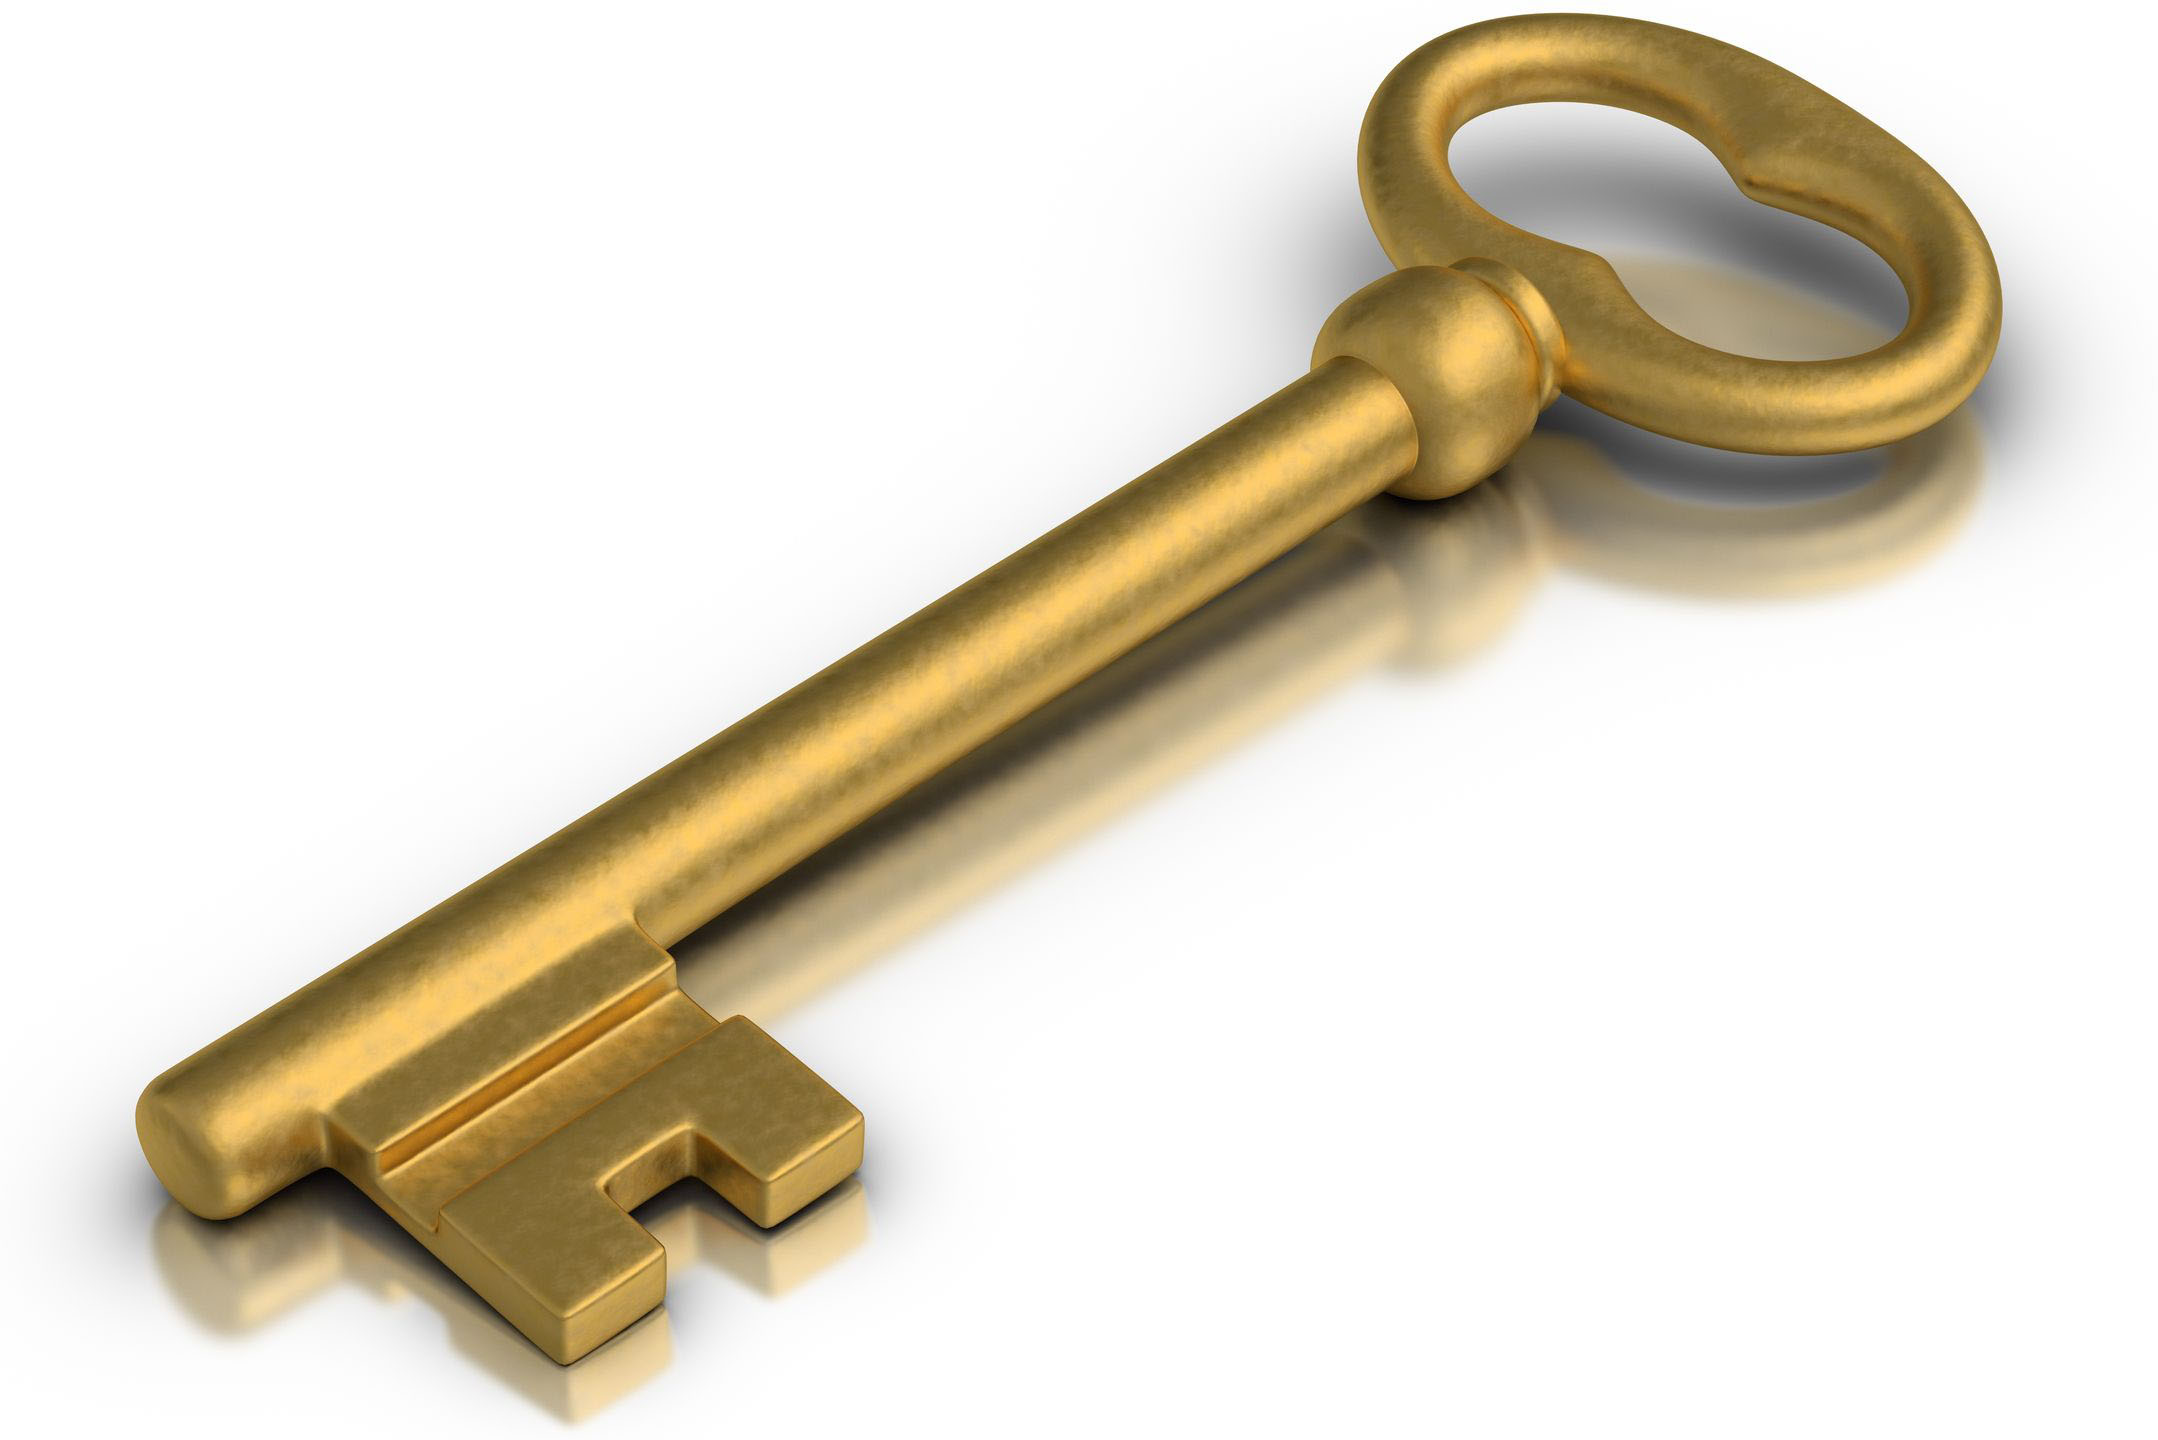 Golden Key - LIBERTY (SECURITY PRIVACY SAFETY) FREE WILL - UNIVERSAL SPENDING AUTHORITY - A GUARANTEED INCOME - NOW YOU OWN YOUR HOME - NOW YOU HAVE AN INCOME